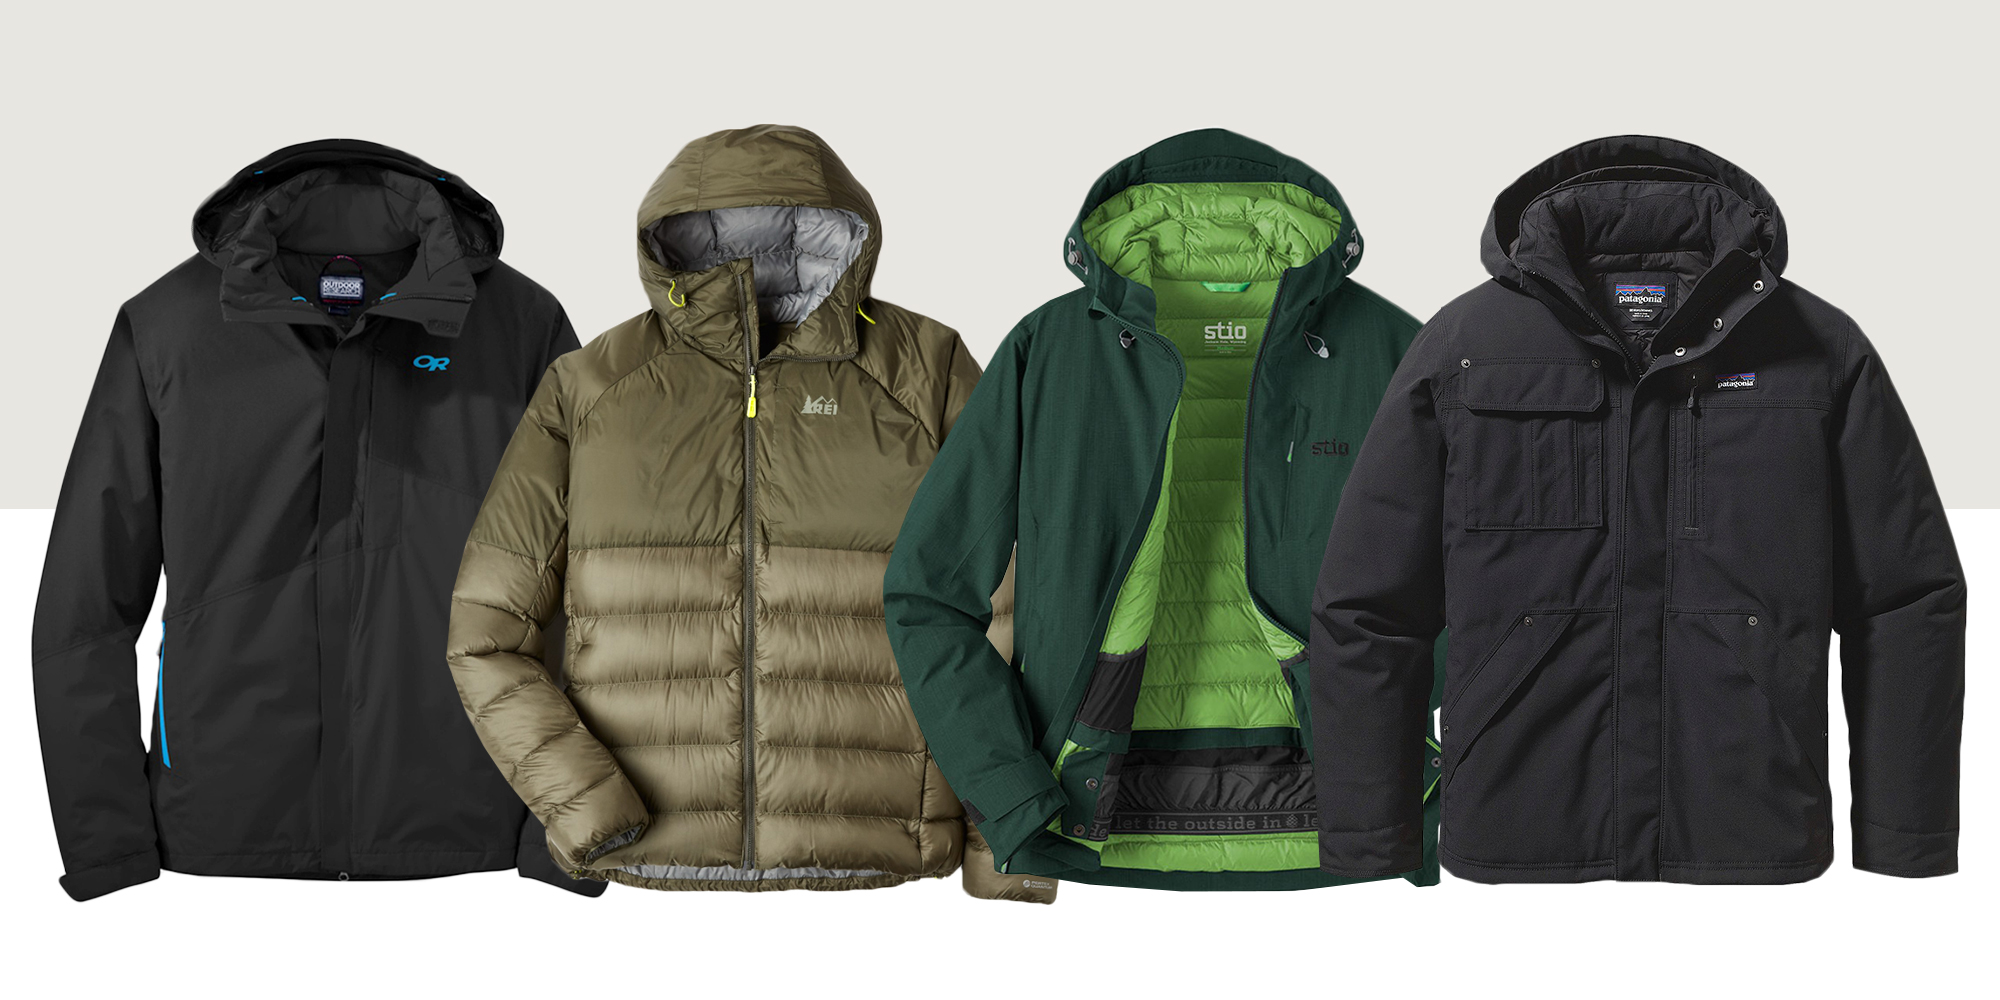 Winter Adventure Ready: Learn More About Winter Gear Take on the winter season with the latest outerwear and cold-weather clothes from DICK'S Sporting Goods. A sleek fleece jacket or plush down coat is the perfect answer to those blustery winter days.